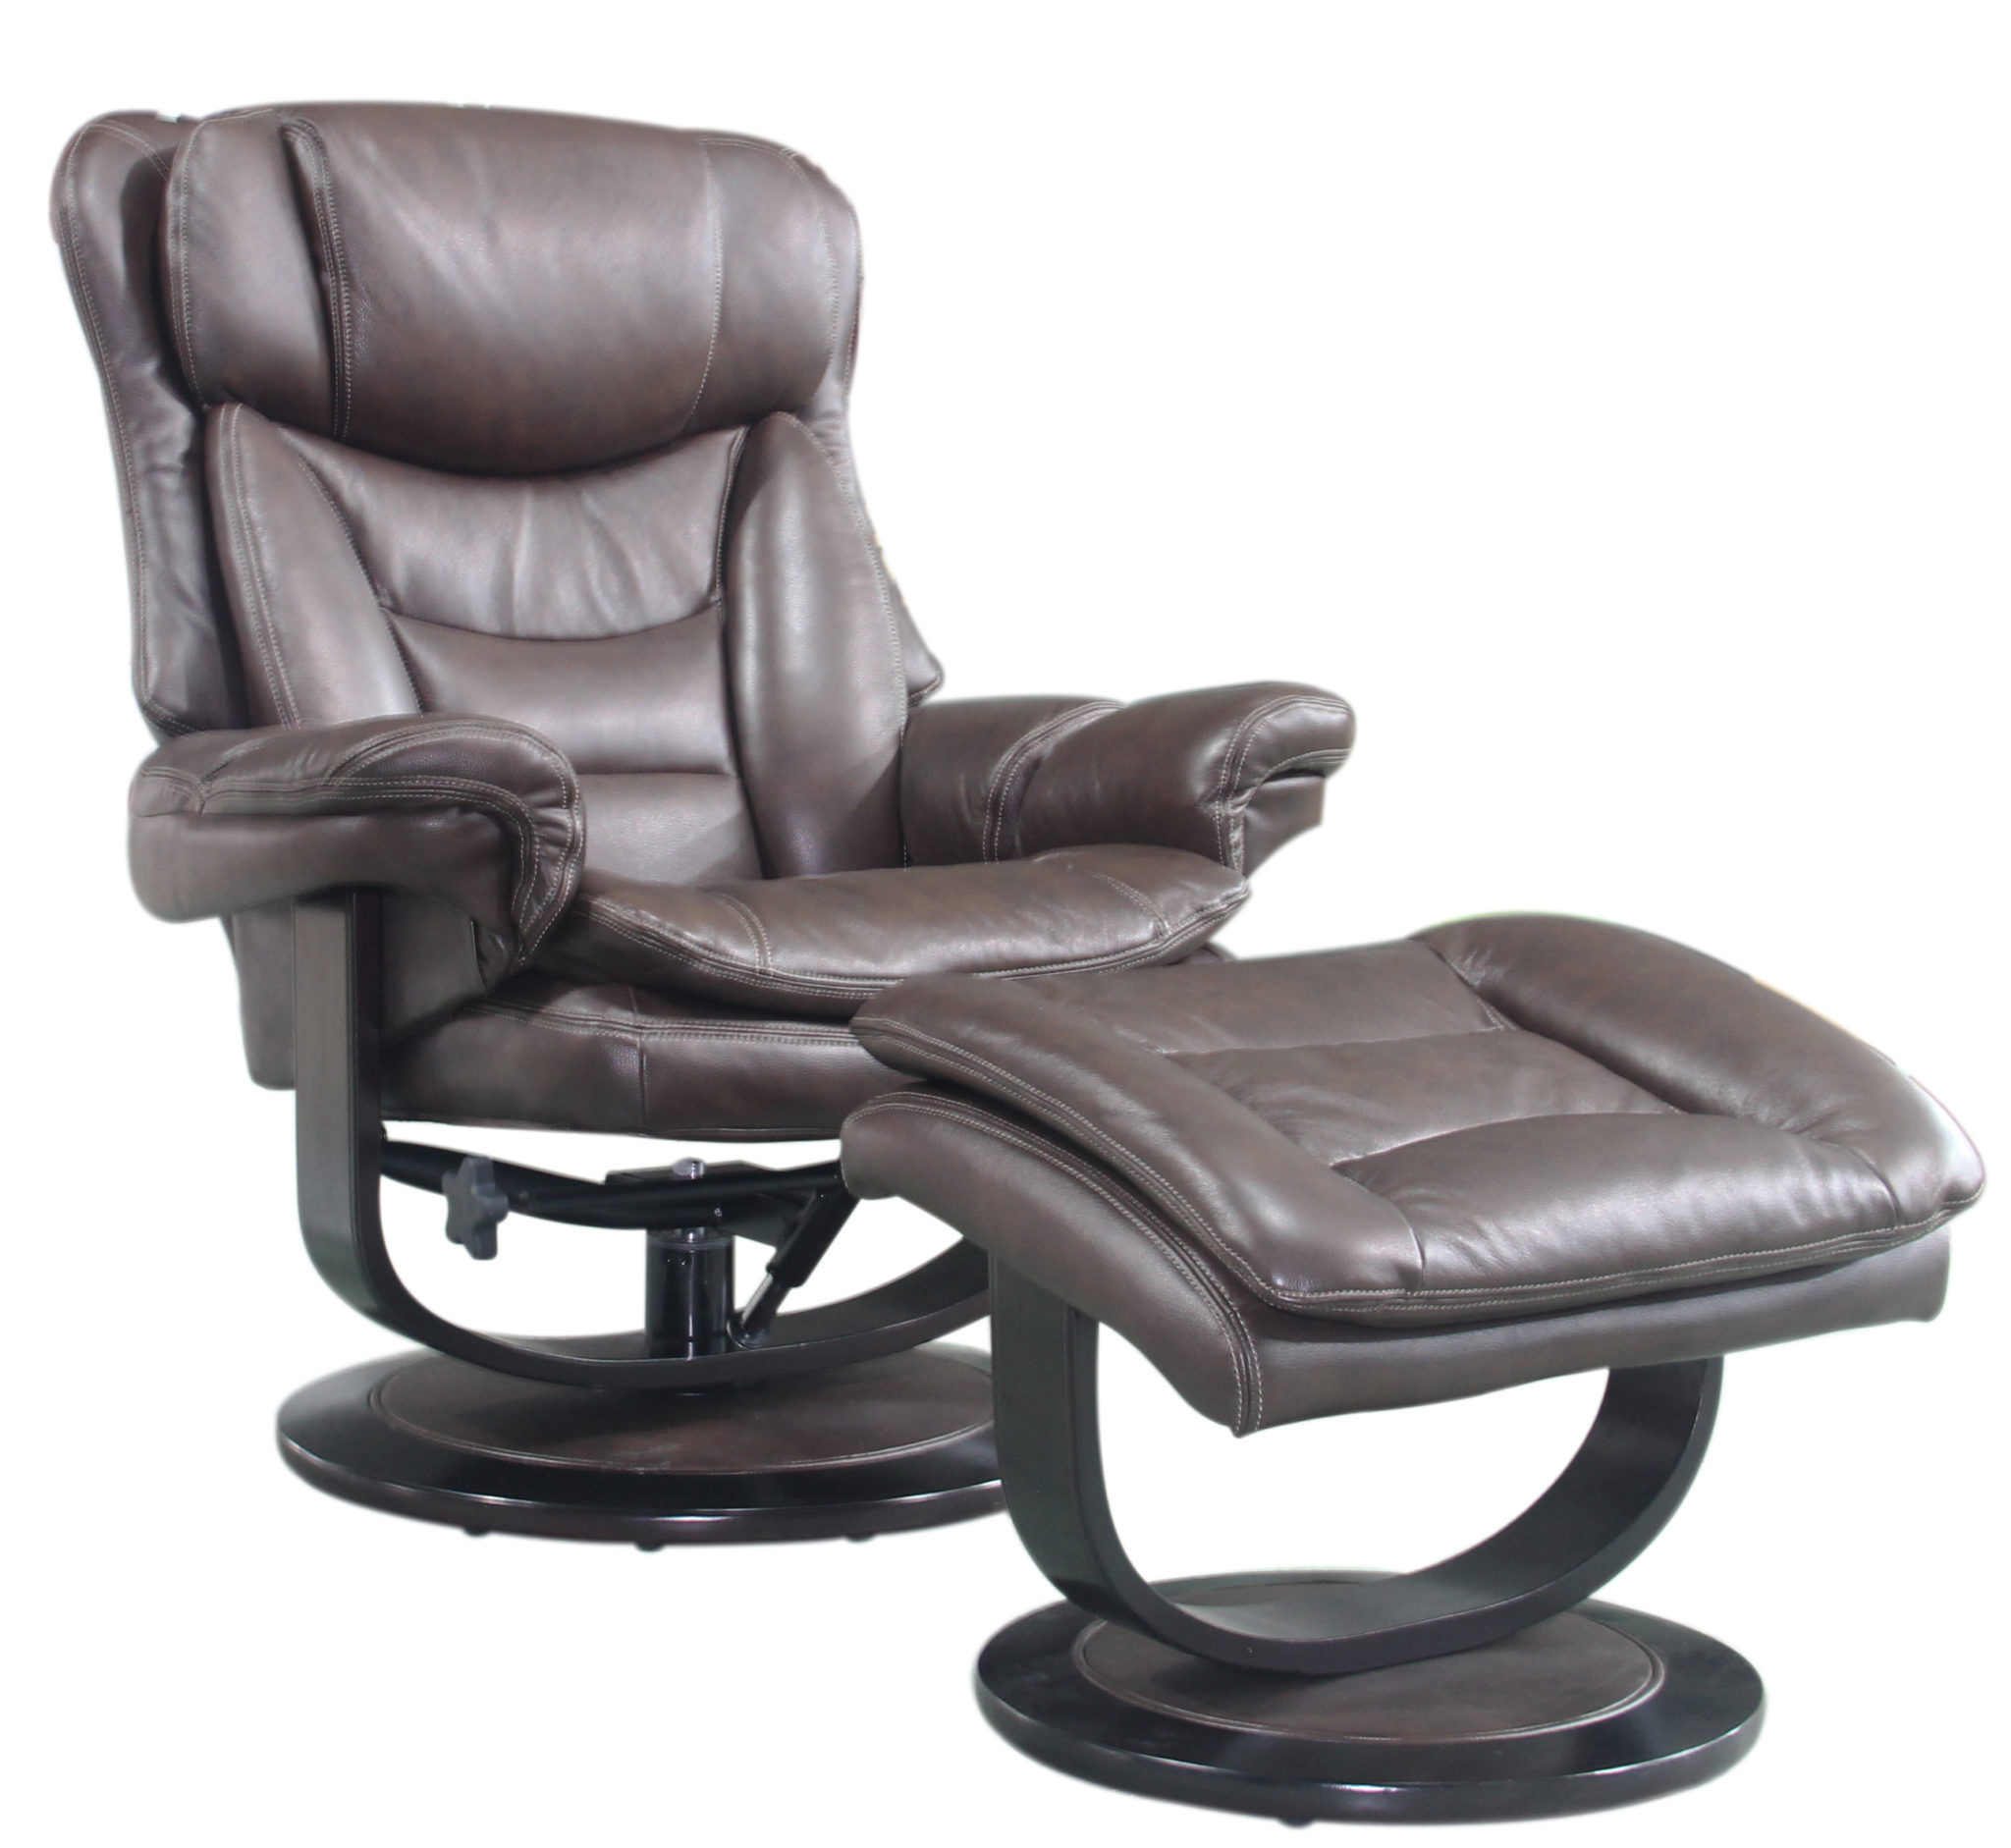 Marvelous Barcalounger Roscoe Chelsea Chocolate Pedestal Recliner And Pdpeps Interior Chair Design Pdpepsorg